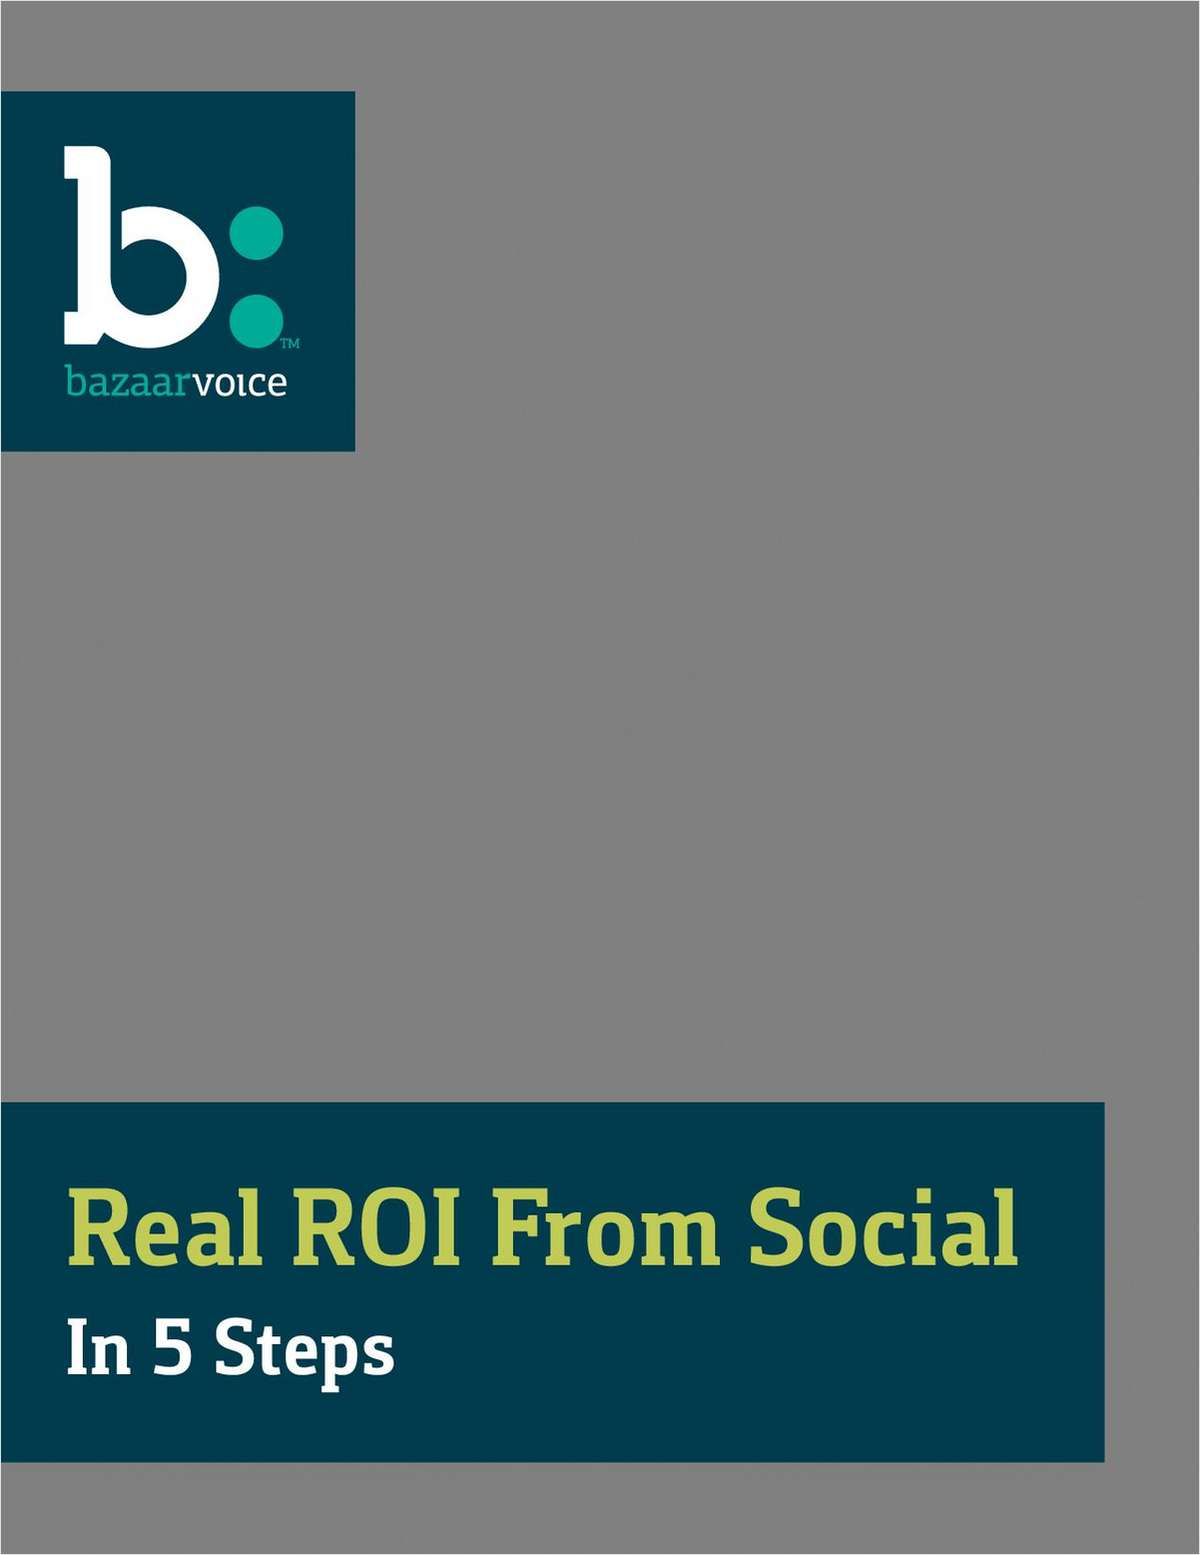 Get a Real ROI From Social in 5 Steps